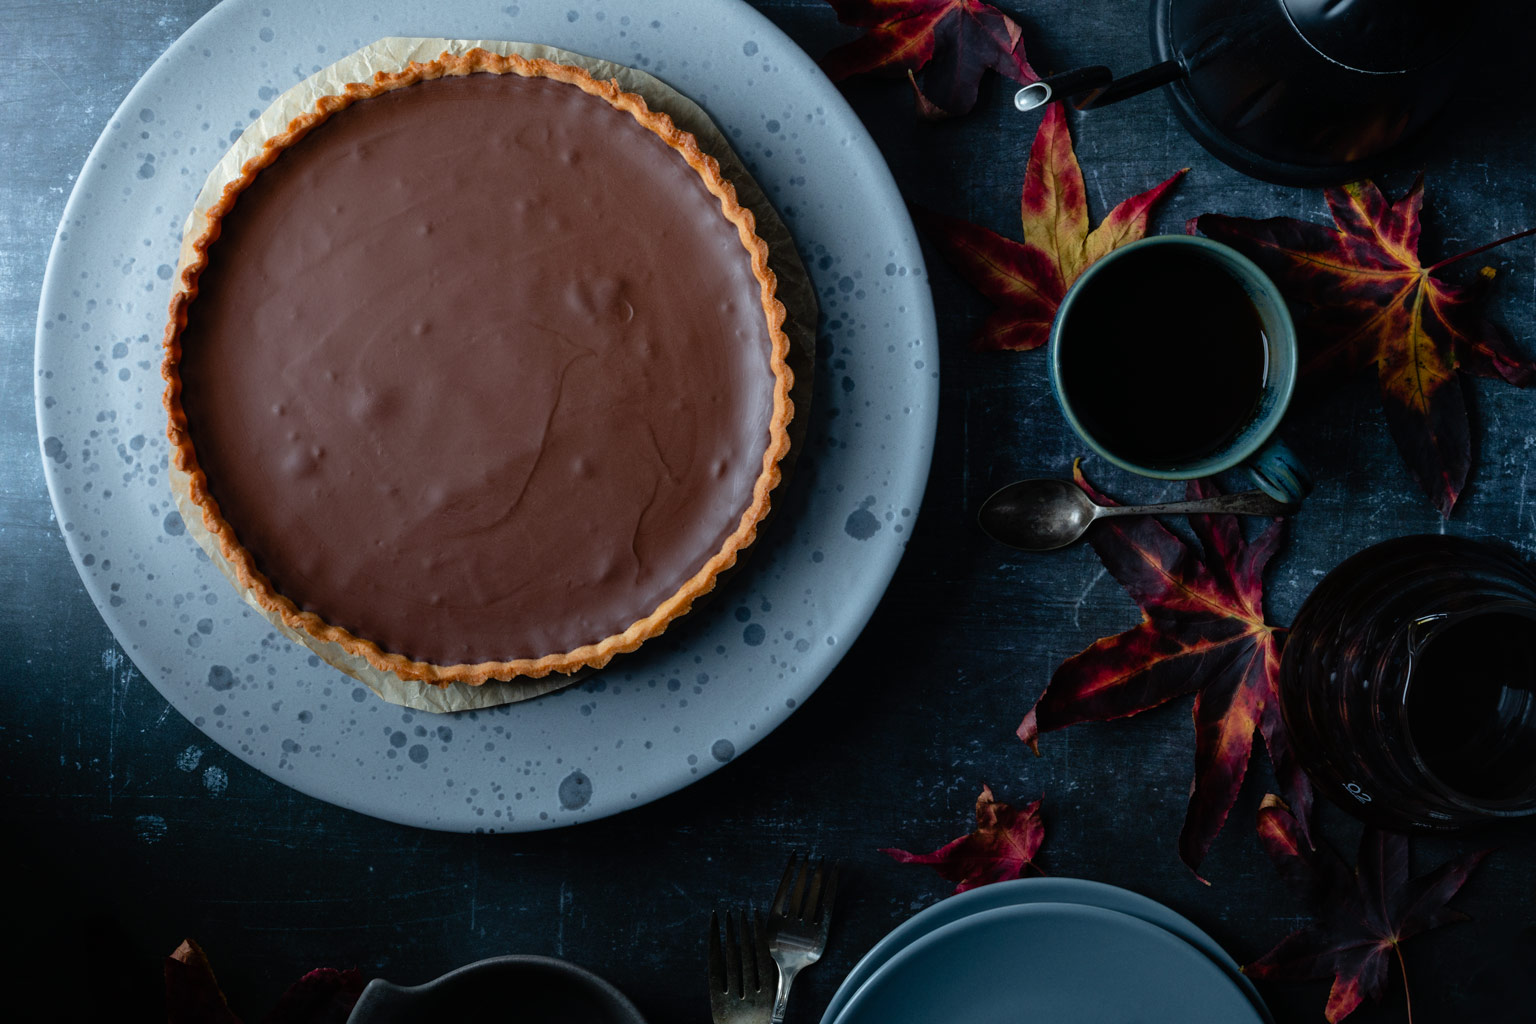 tarte au chocolate: French chocolate tart